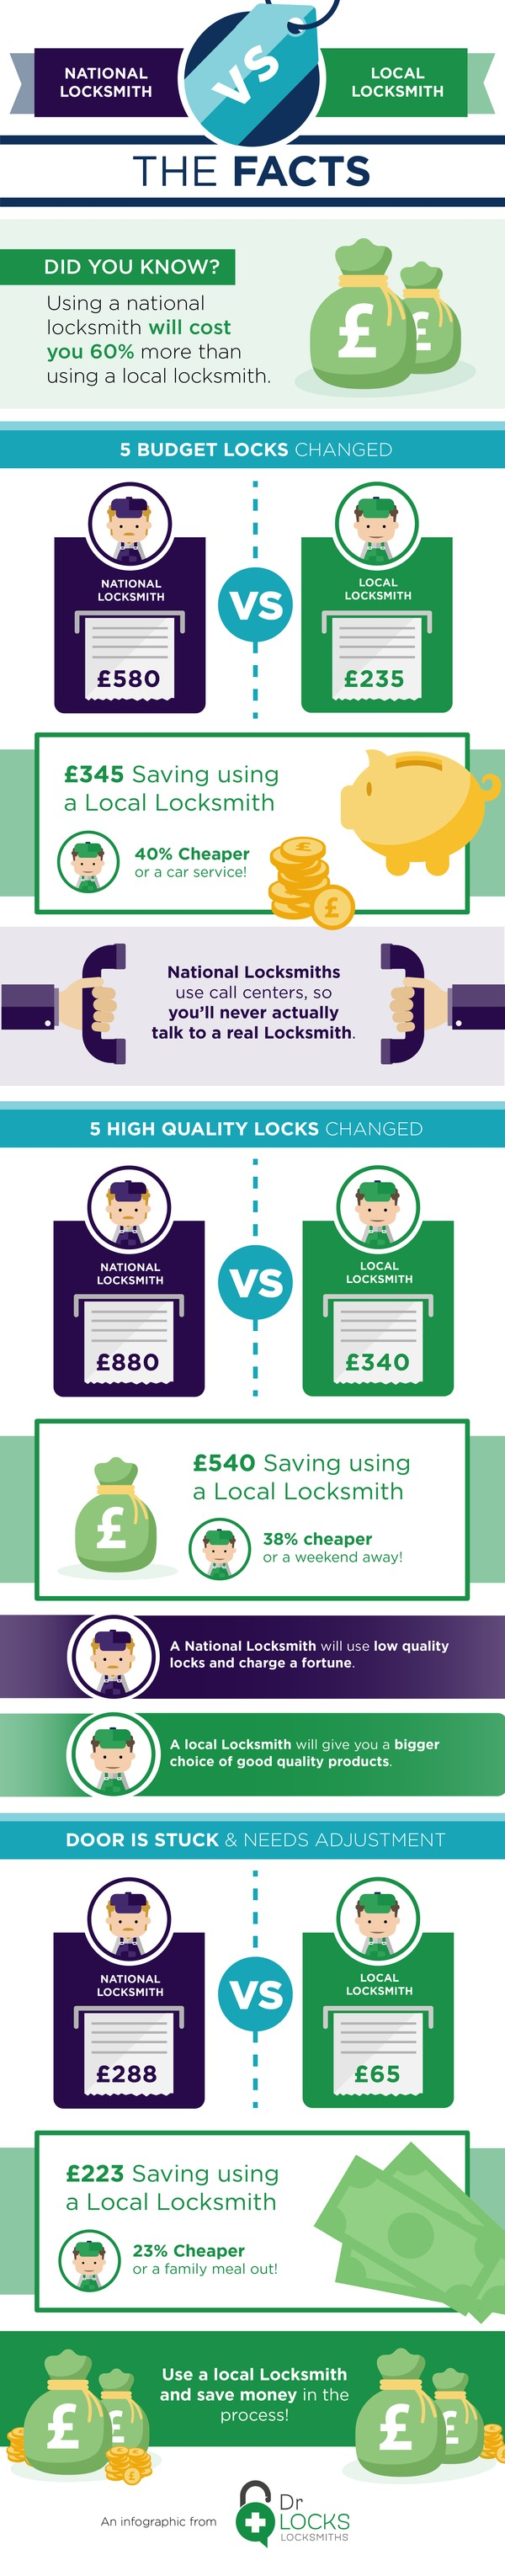 National Locksmith vs Local Locksmith: The Facts